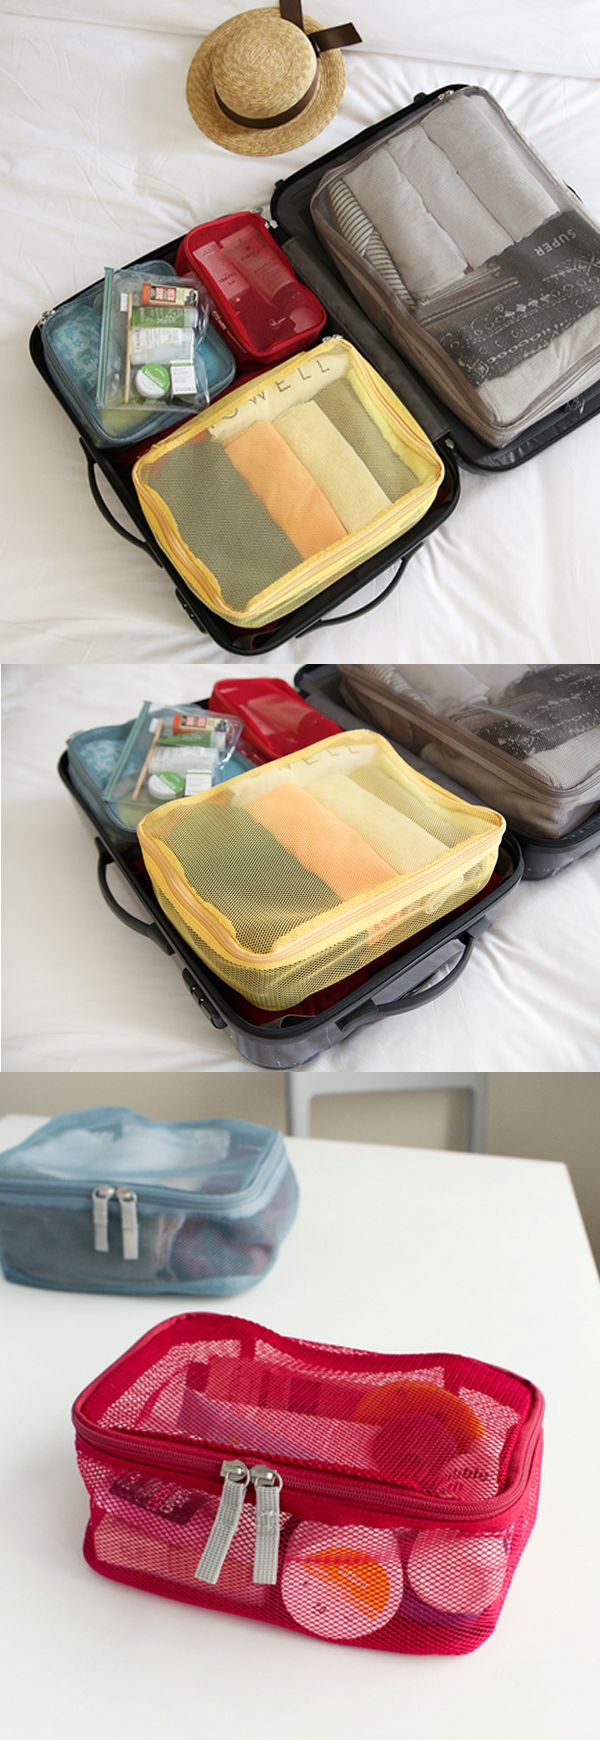 The Luggage Mesh Bag Set is perfect for my next travel as the 5 differently sized pouches makes it convenient to pack my items! By keeping things organized utilizing the pouches, there are more luggage spaces to use the bag more effectively! Plus, the pouches are made of mesh material so that I can see what's inside the pouches and access them quickly and easily.